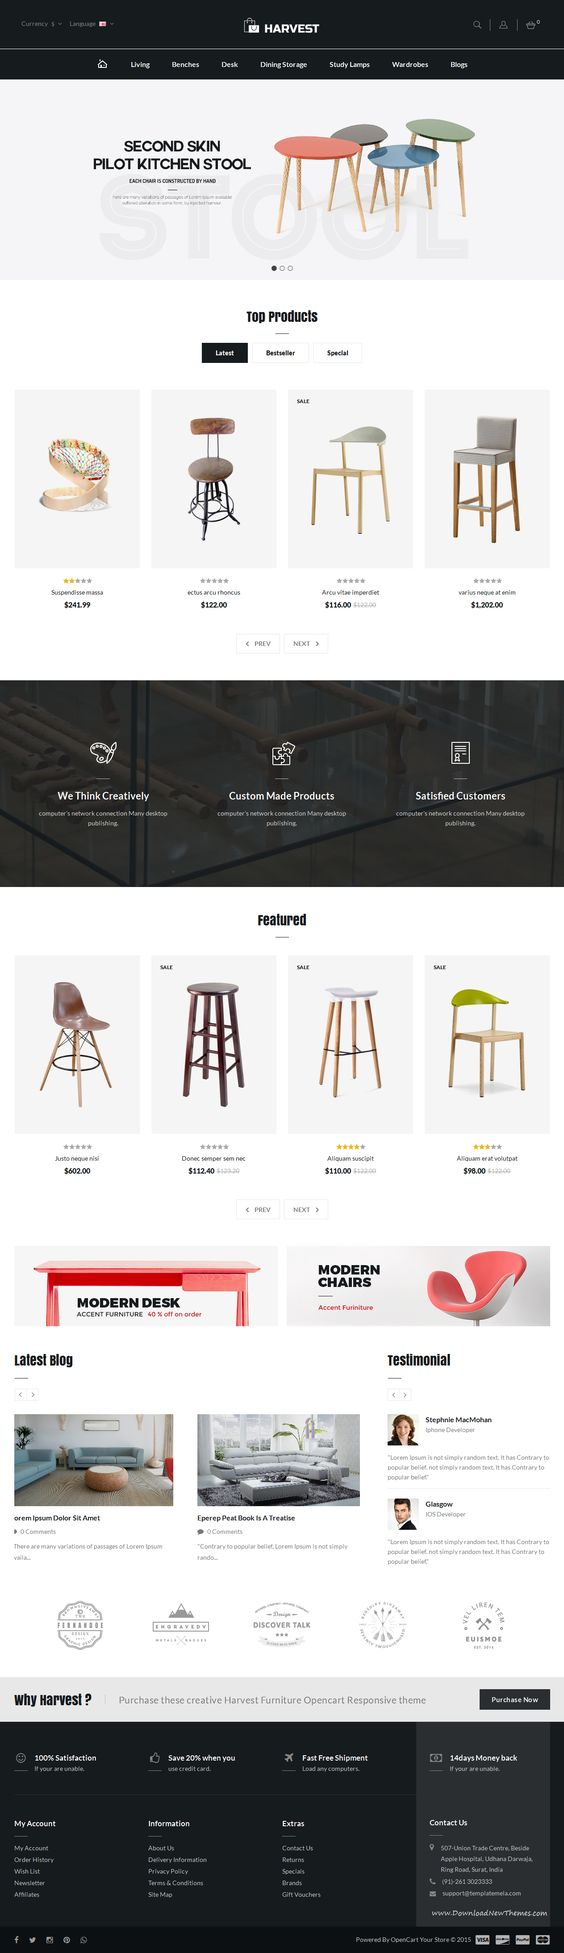 harvest opencart responsive theme is specially designed for furniture shop ecommerce website template best furniture websites design